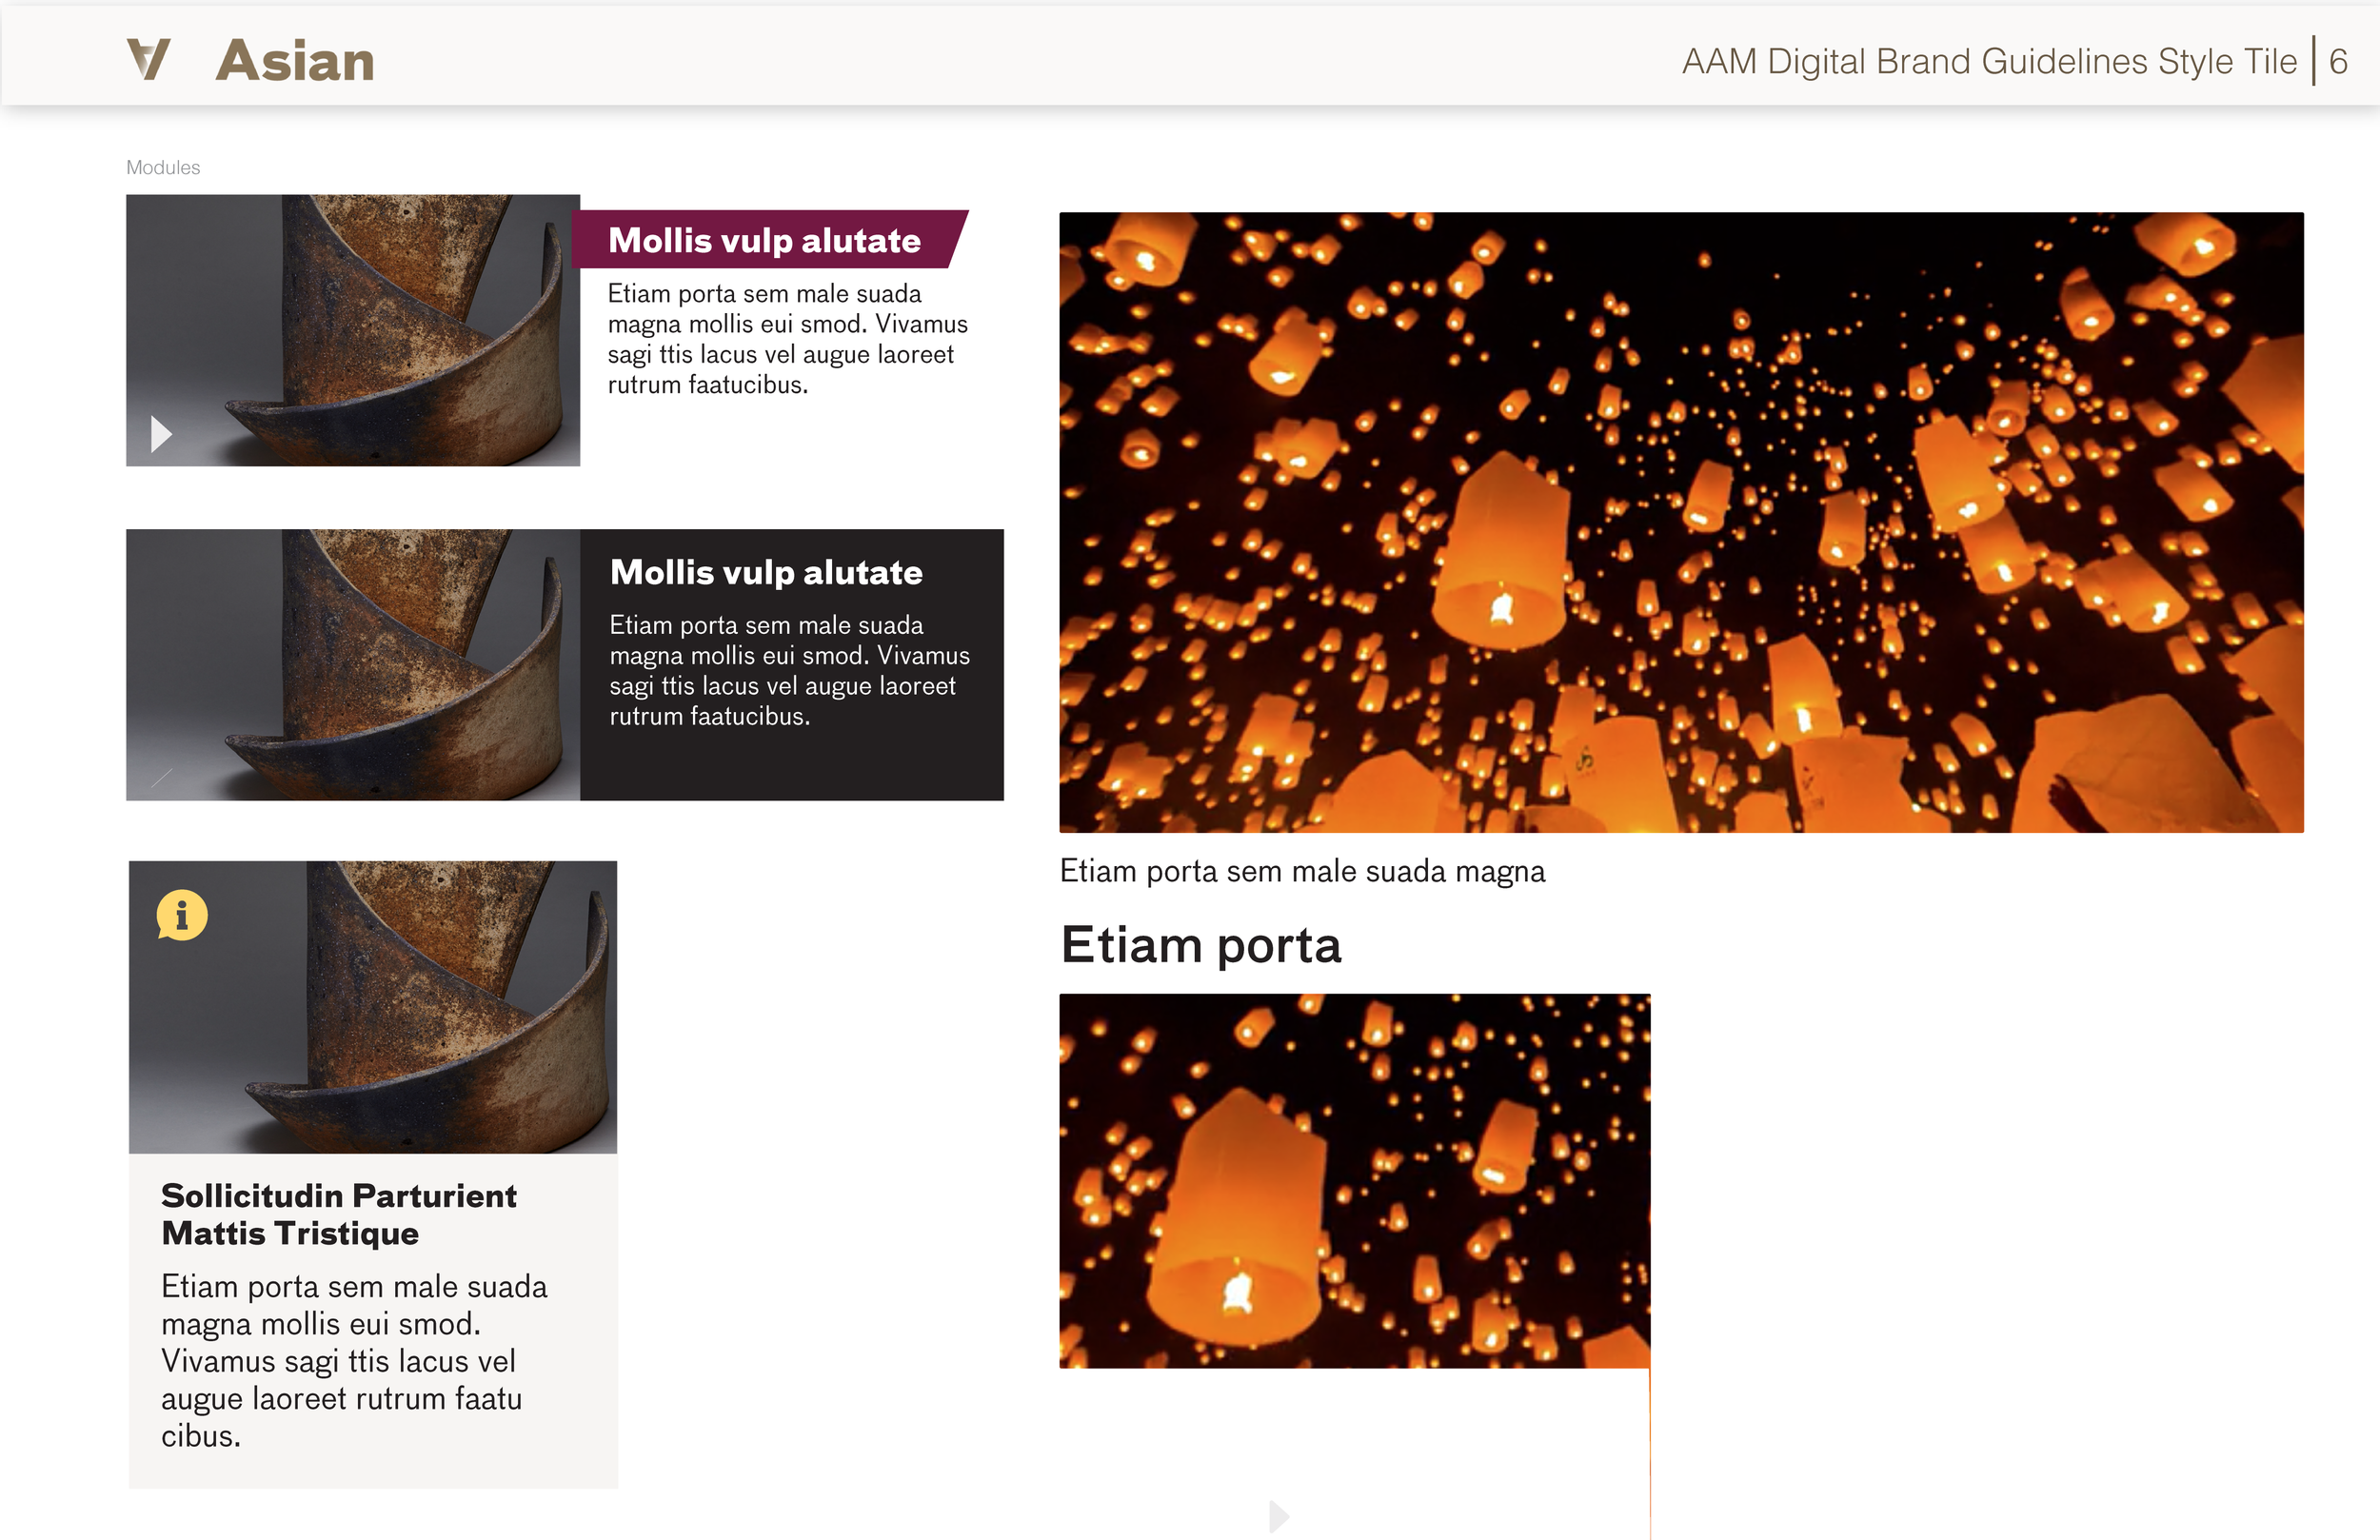 AAM styletiles 3_photos_videos_WIP.png